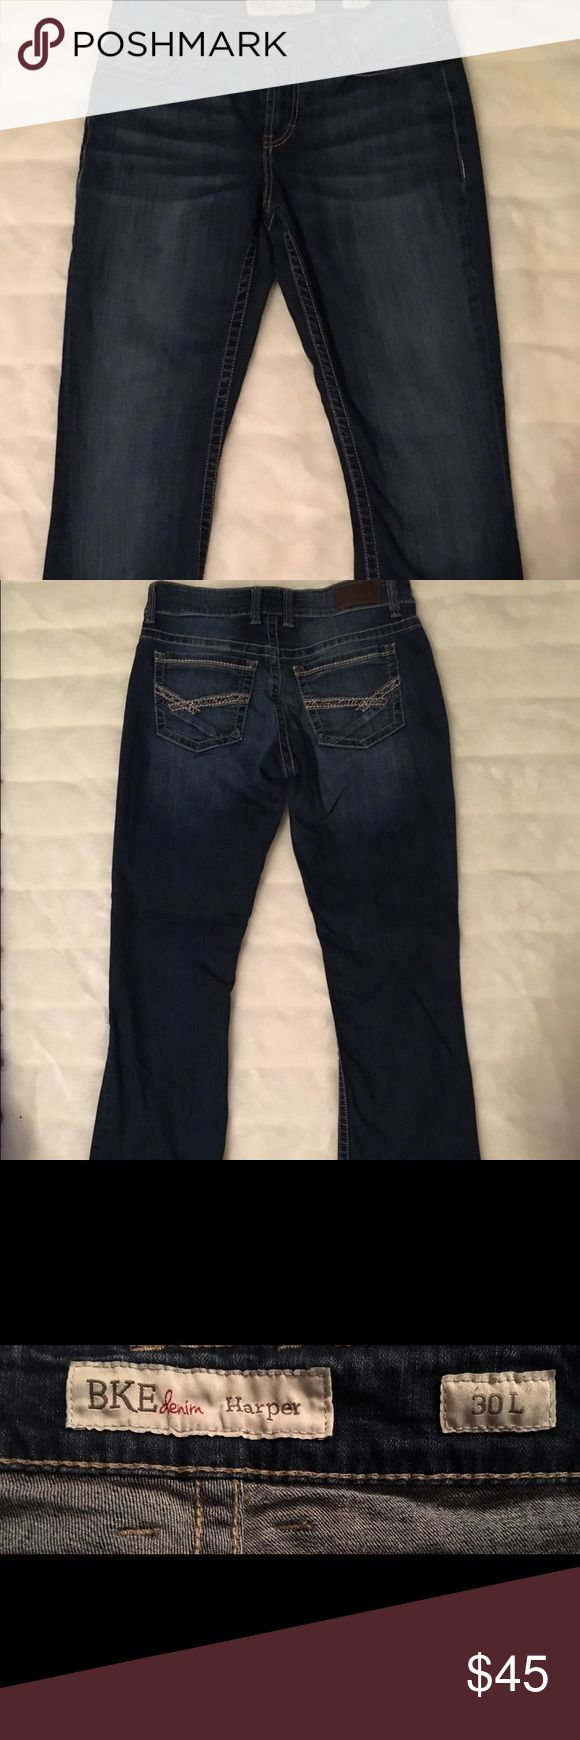 BKE Jeans from the buckle store EUC BKE Jeans style Harper 30 L BKE Jeans Boot Cut